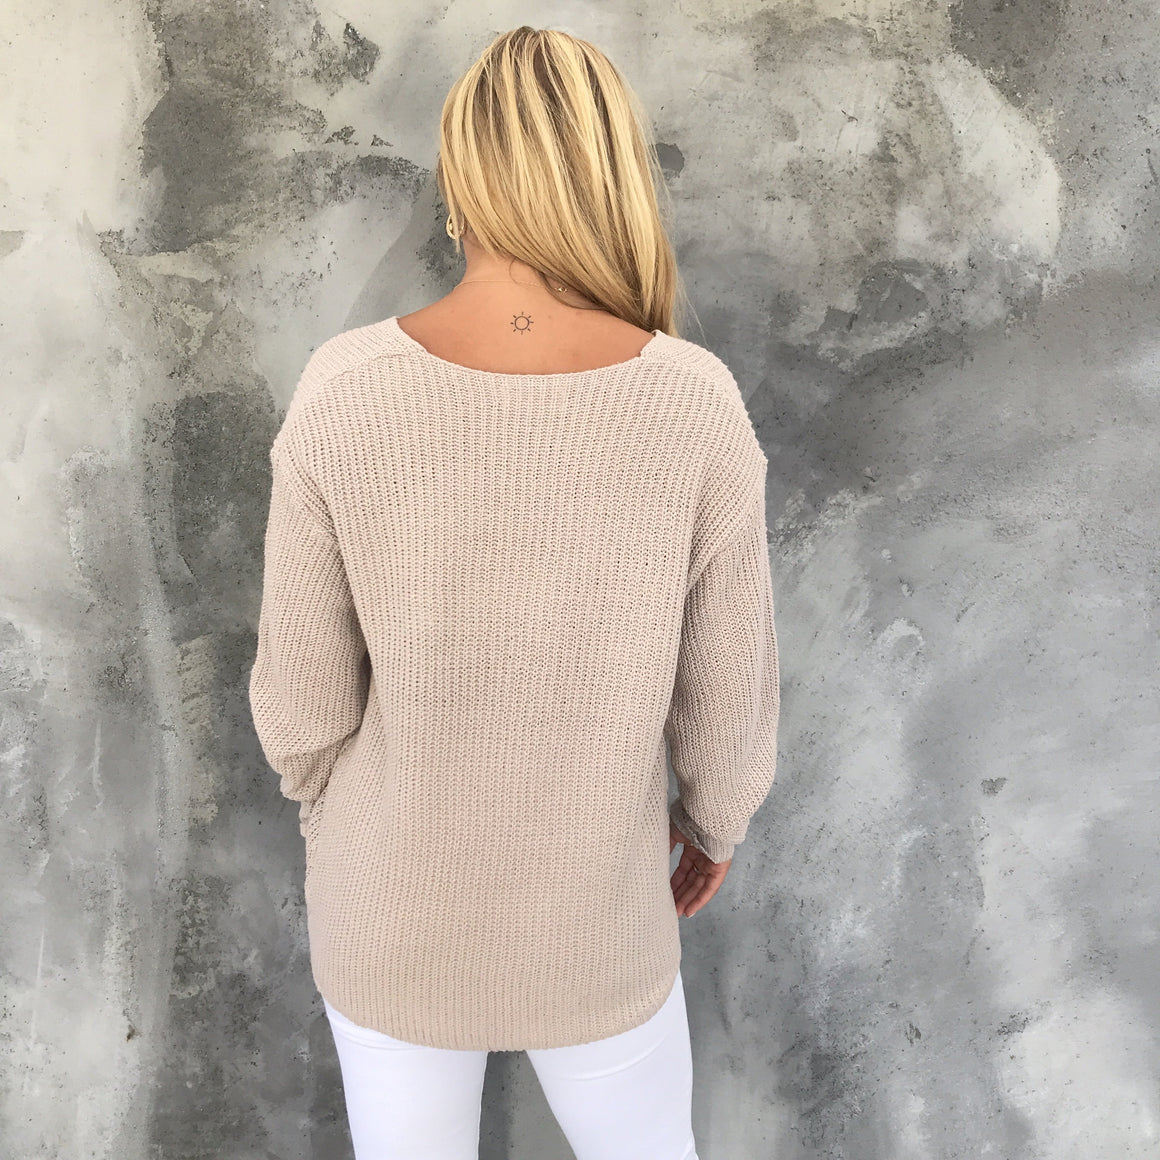 Cuddle Weather Knit Sweater In Oatmeal - Dainty Hooligan